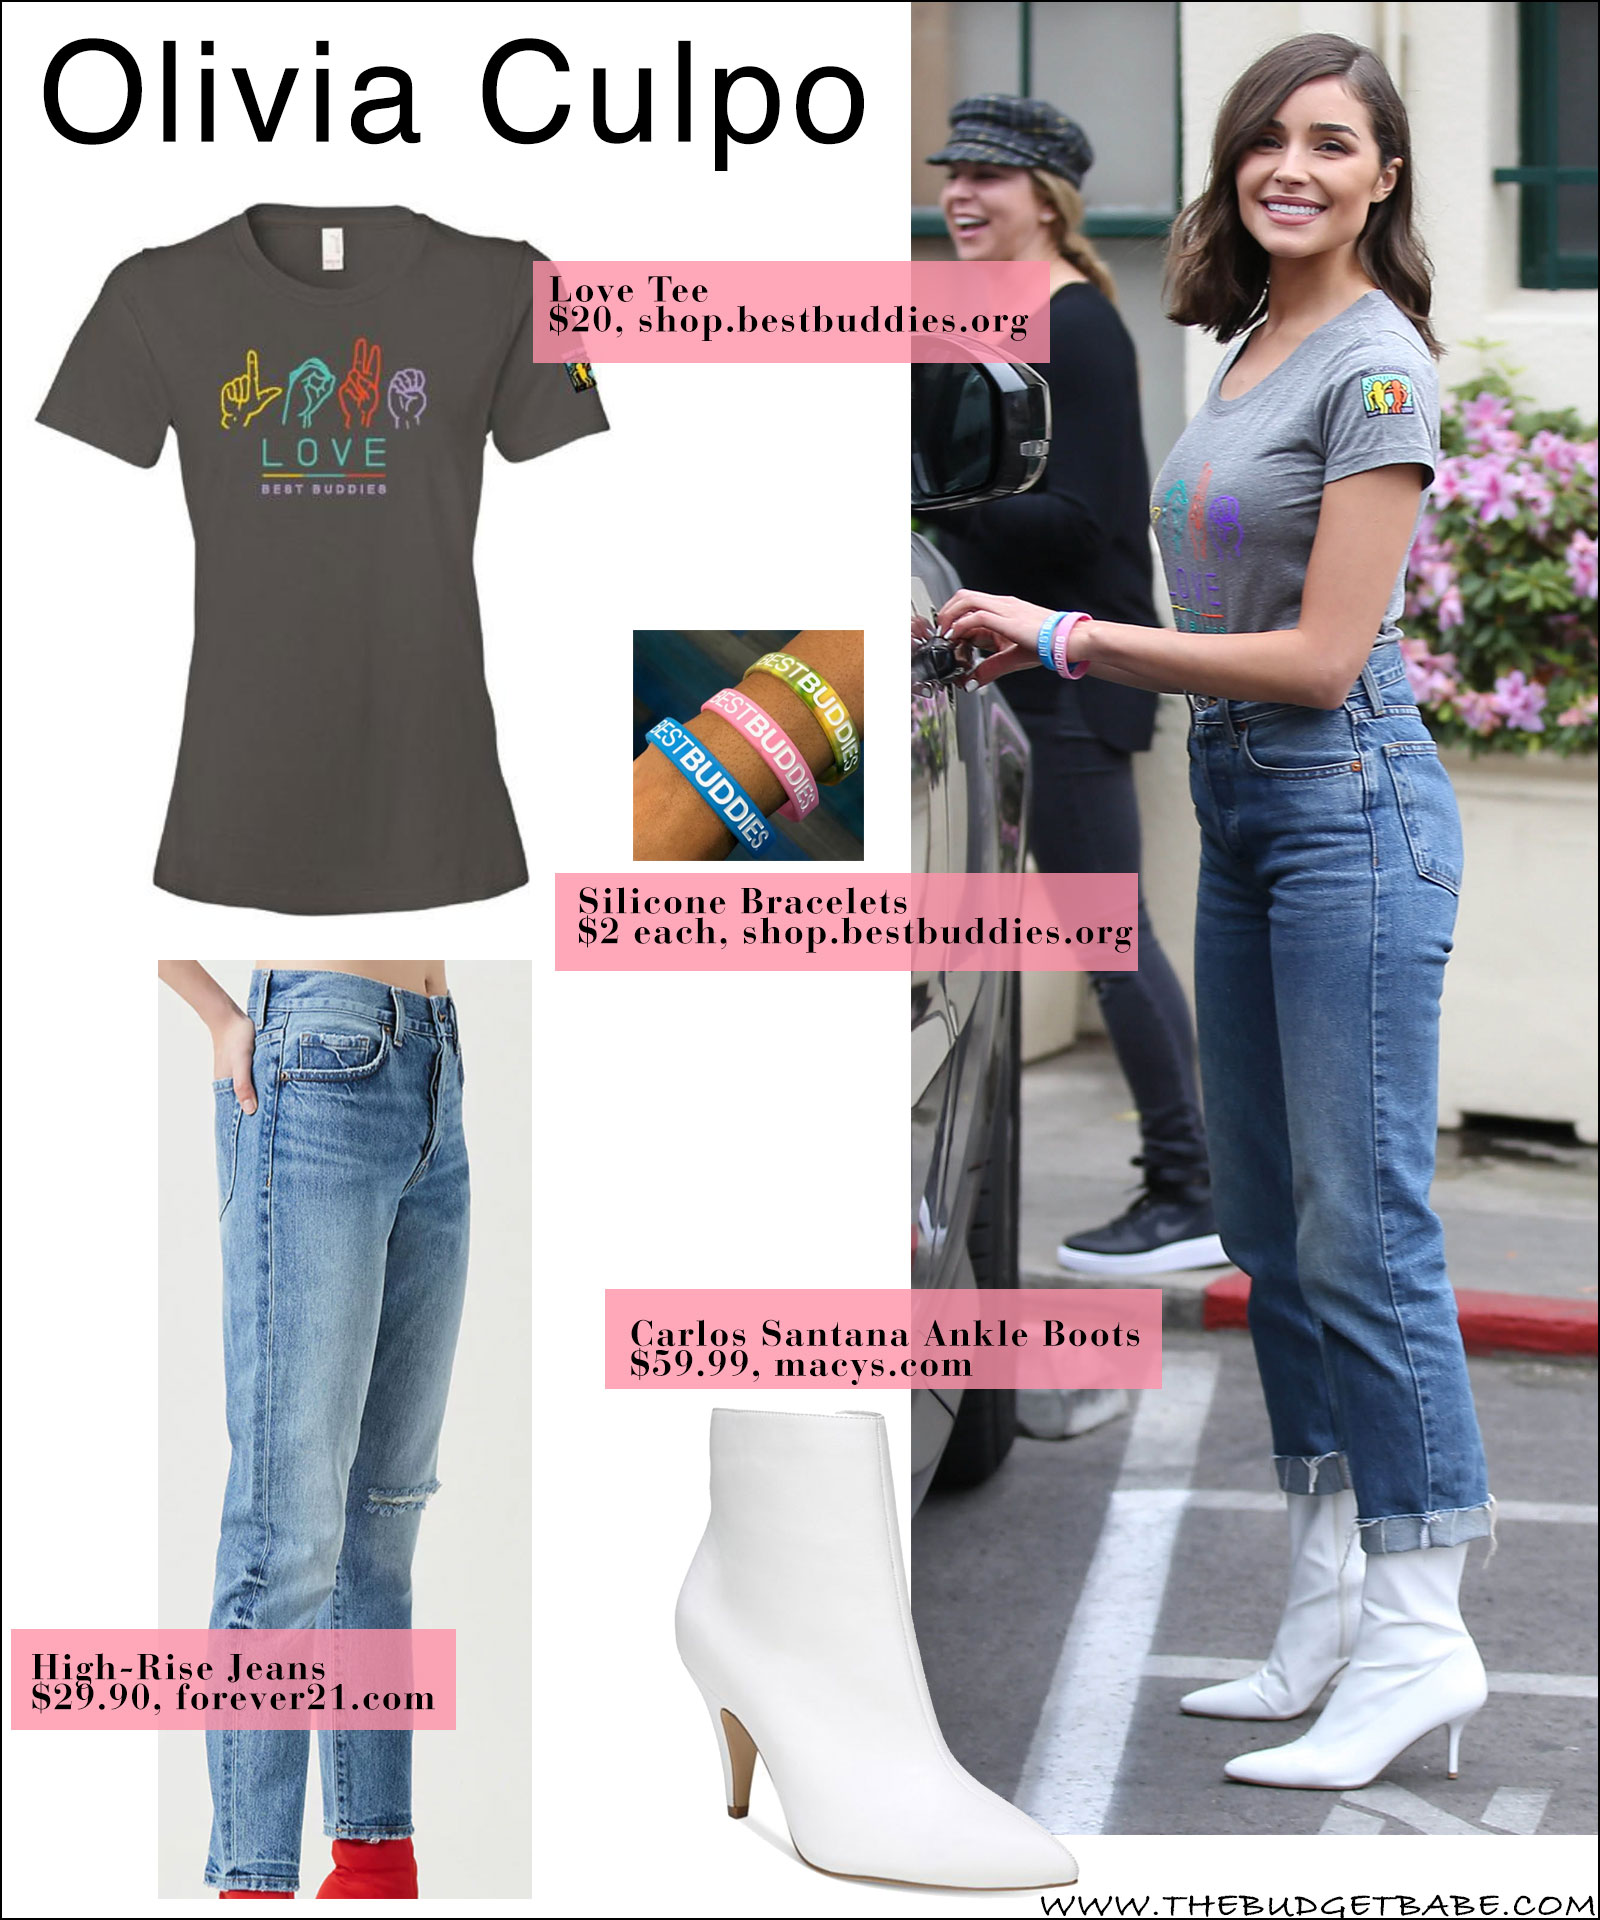 Olivia Culpo wears a Love Best Buddies T-Shirt with high waist jeans and white ankle boots